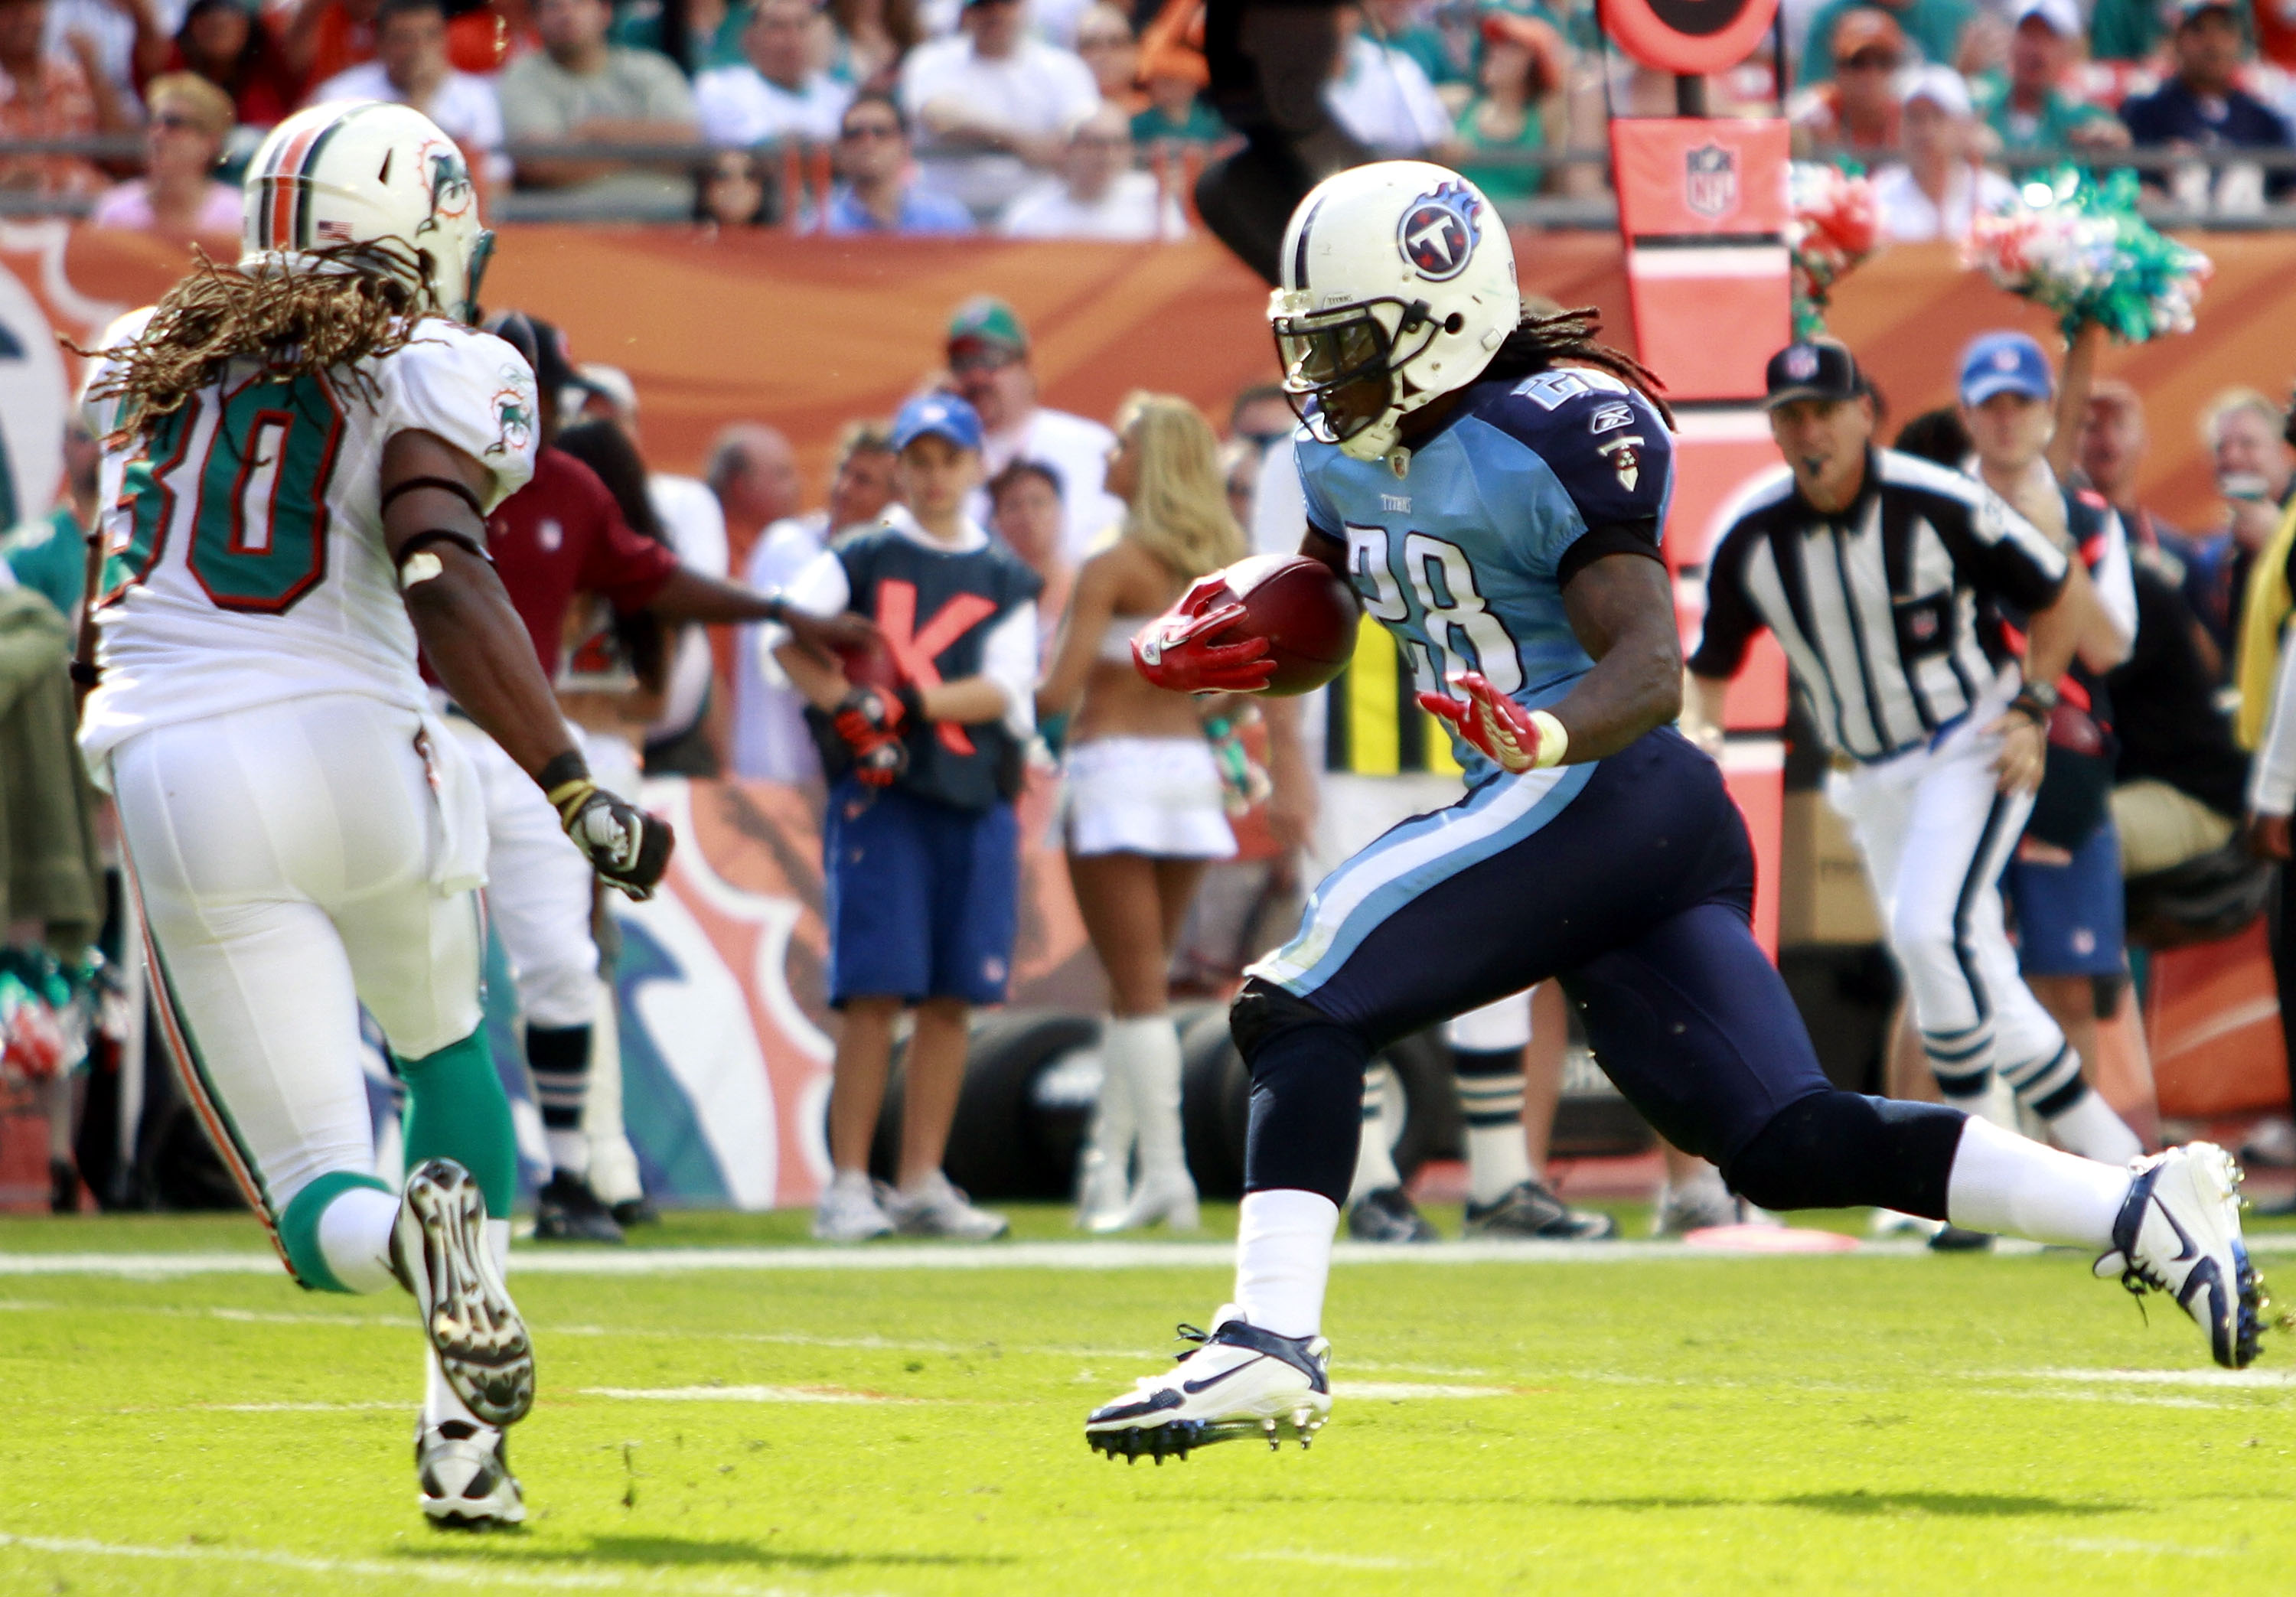 MIAMI - NOVEMBER 14:  Running back Chris Johnson #28 of the Tennessee Titans scores a touchdown  against Chris Clemons #30 of the Miami Dolphins at Sun Life Stadium on November 14, 2010 in Miami, Florida.  (Photo by Marc Serota/Getty Images)